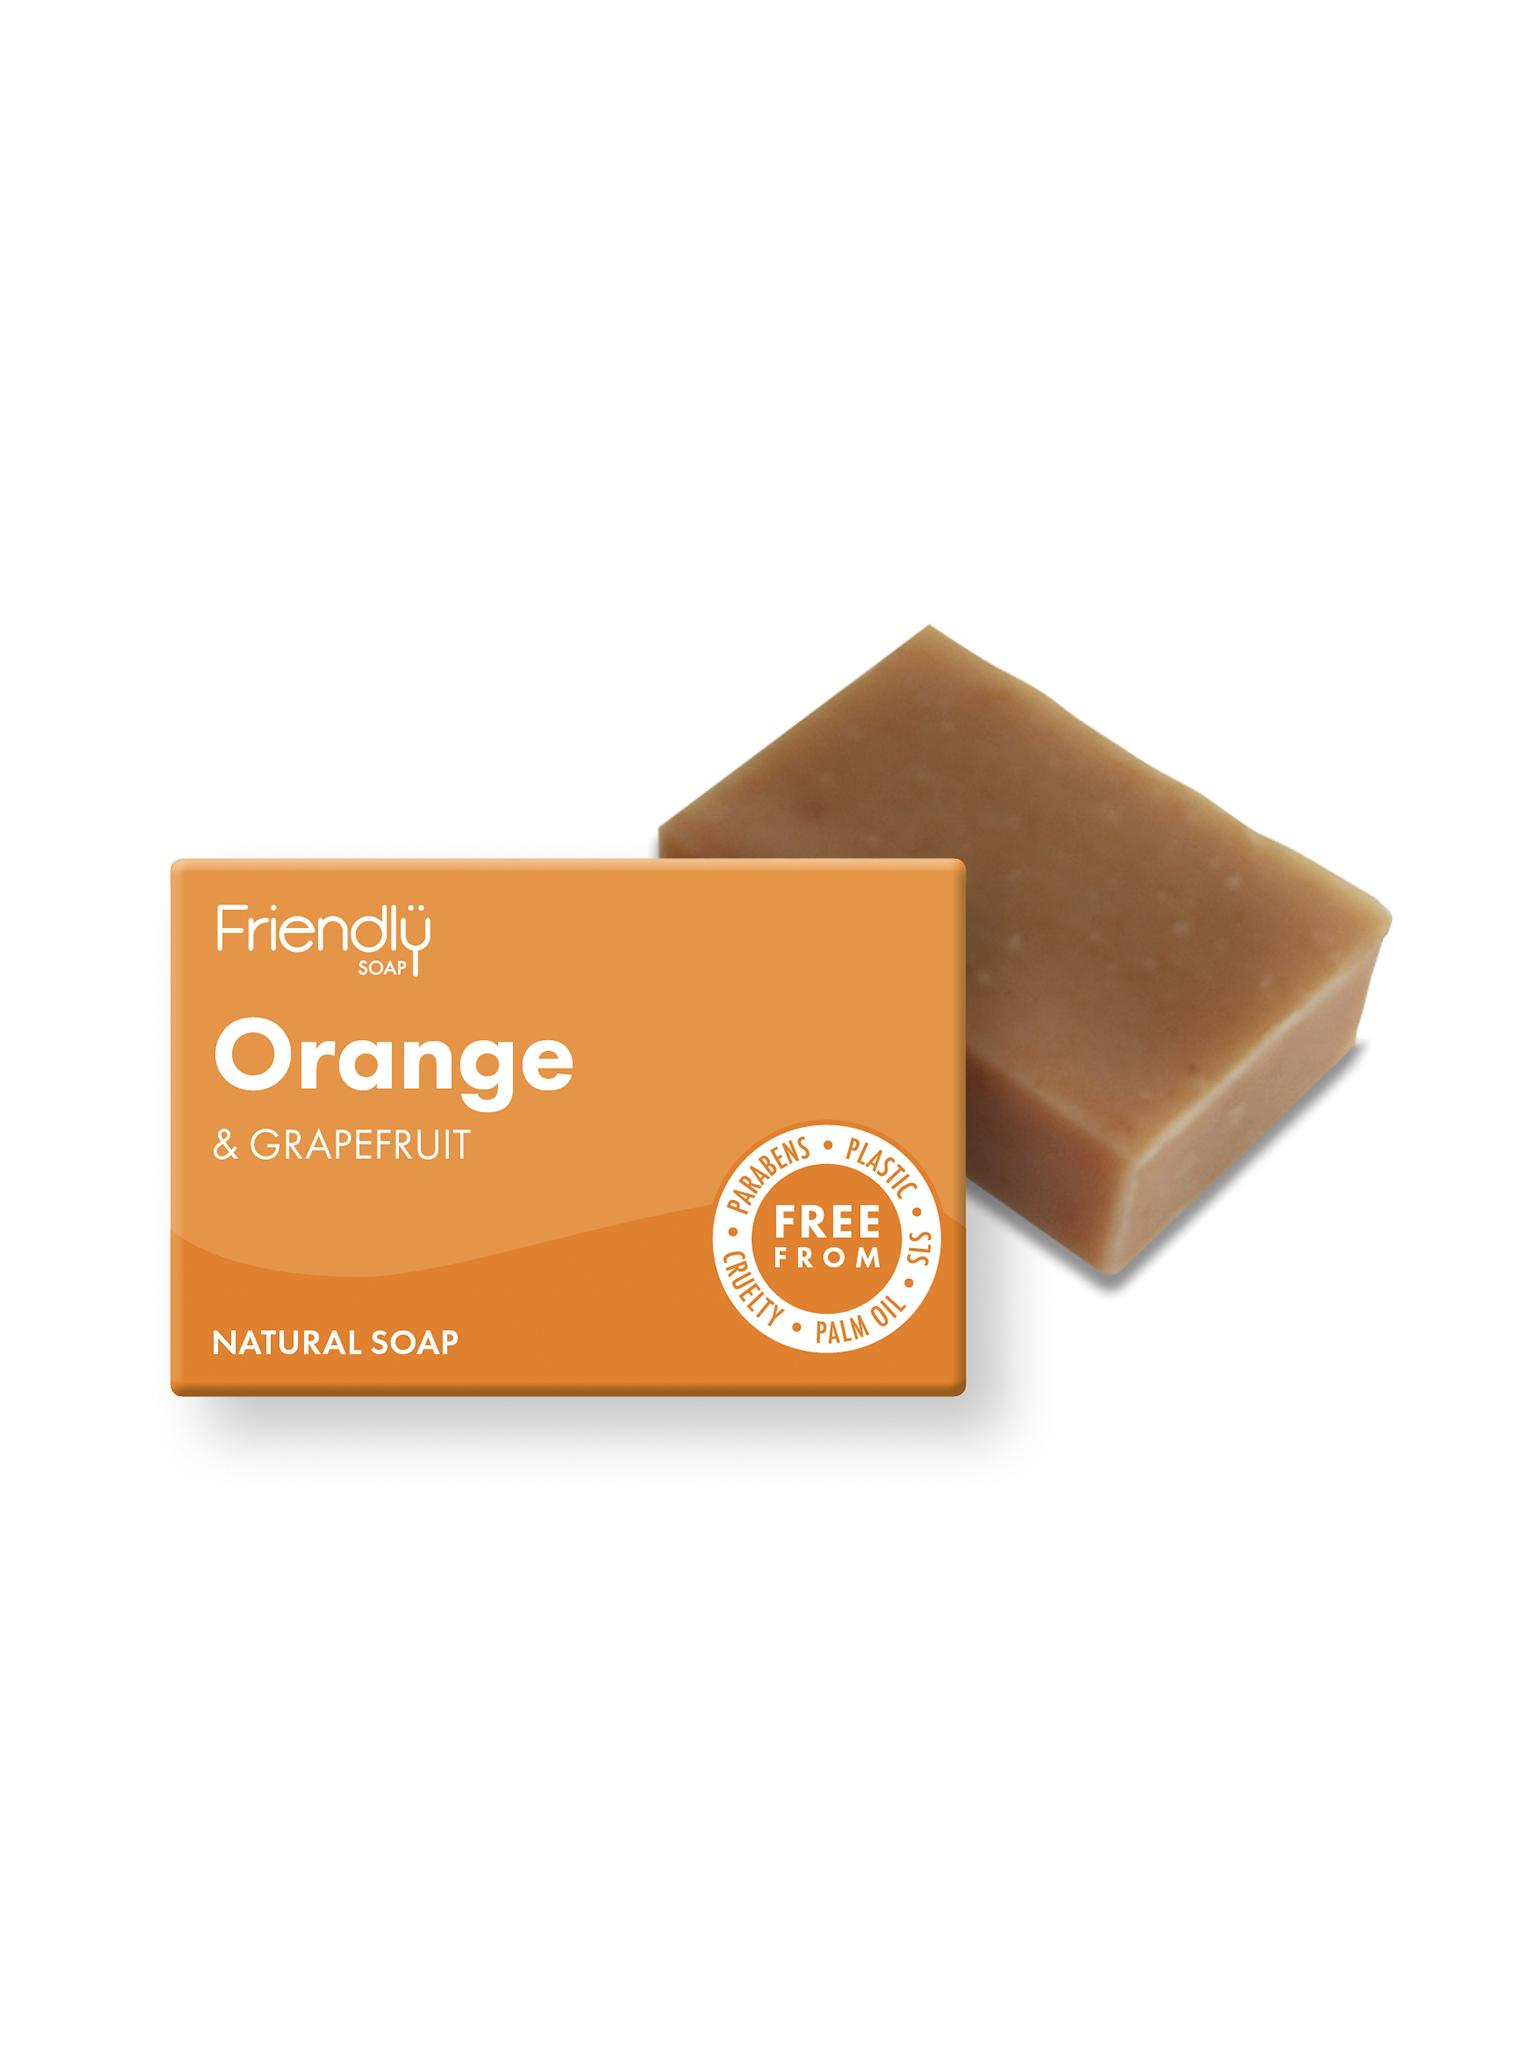 Soap Selection box - Orange and Grapefruit soap